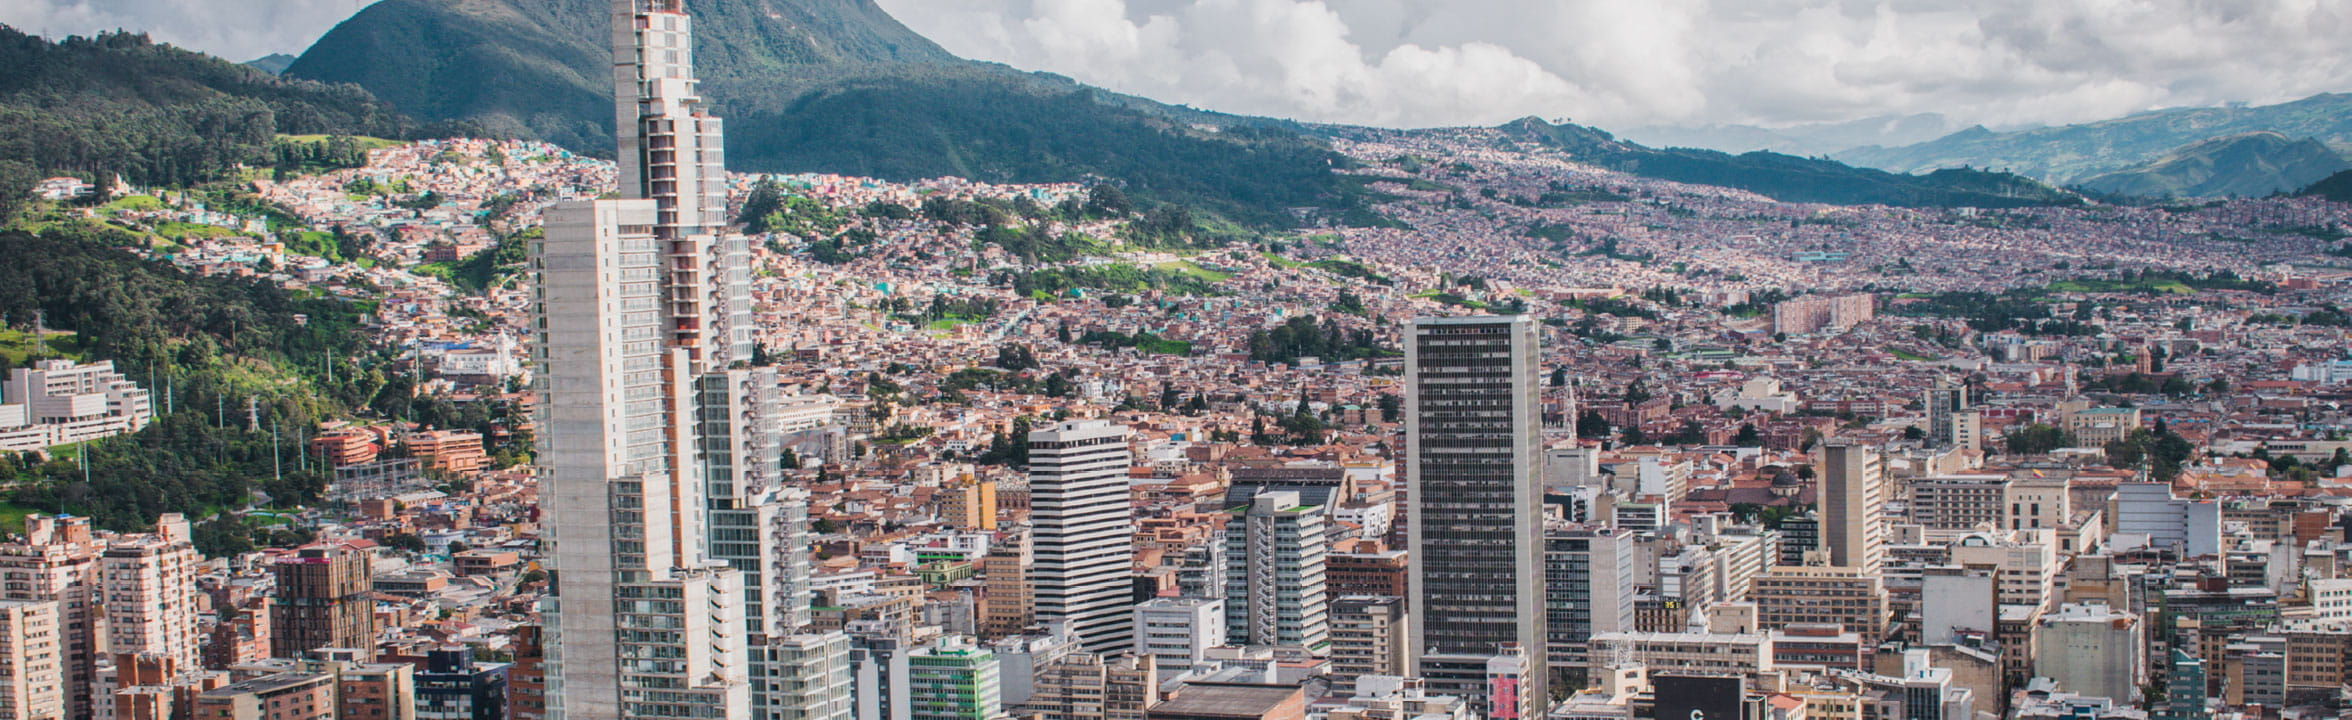 colombia-banner